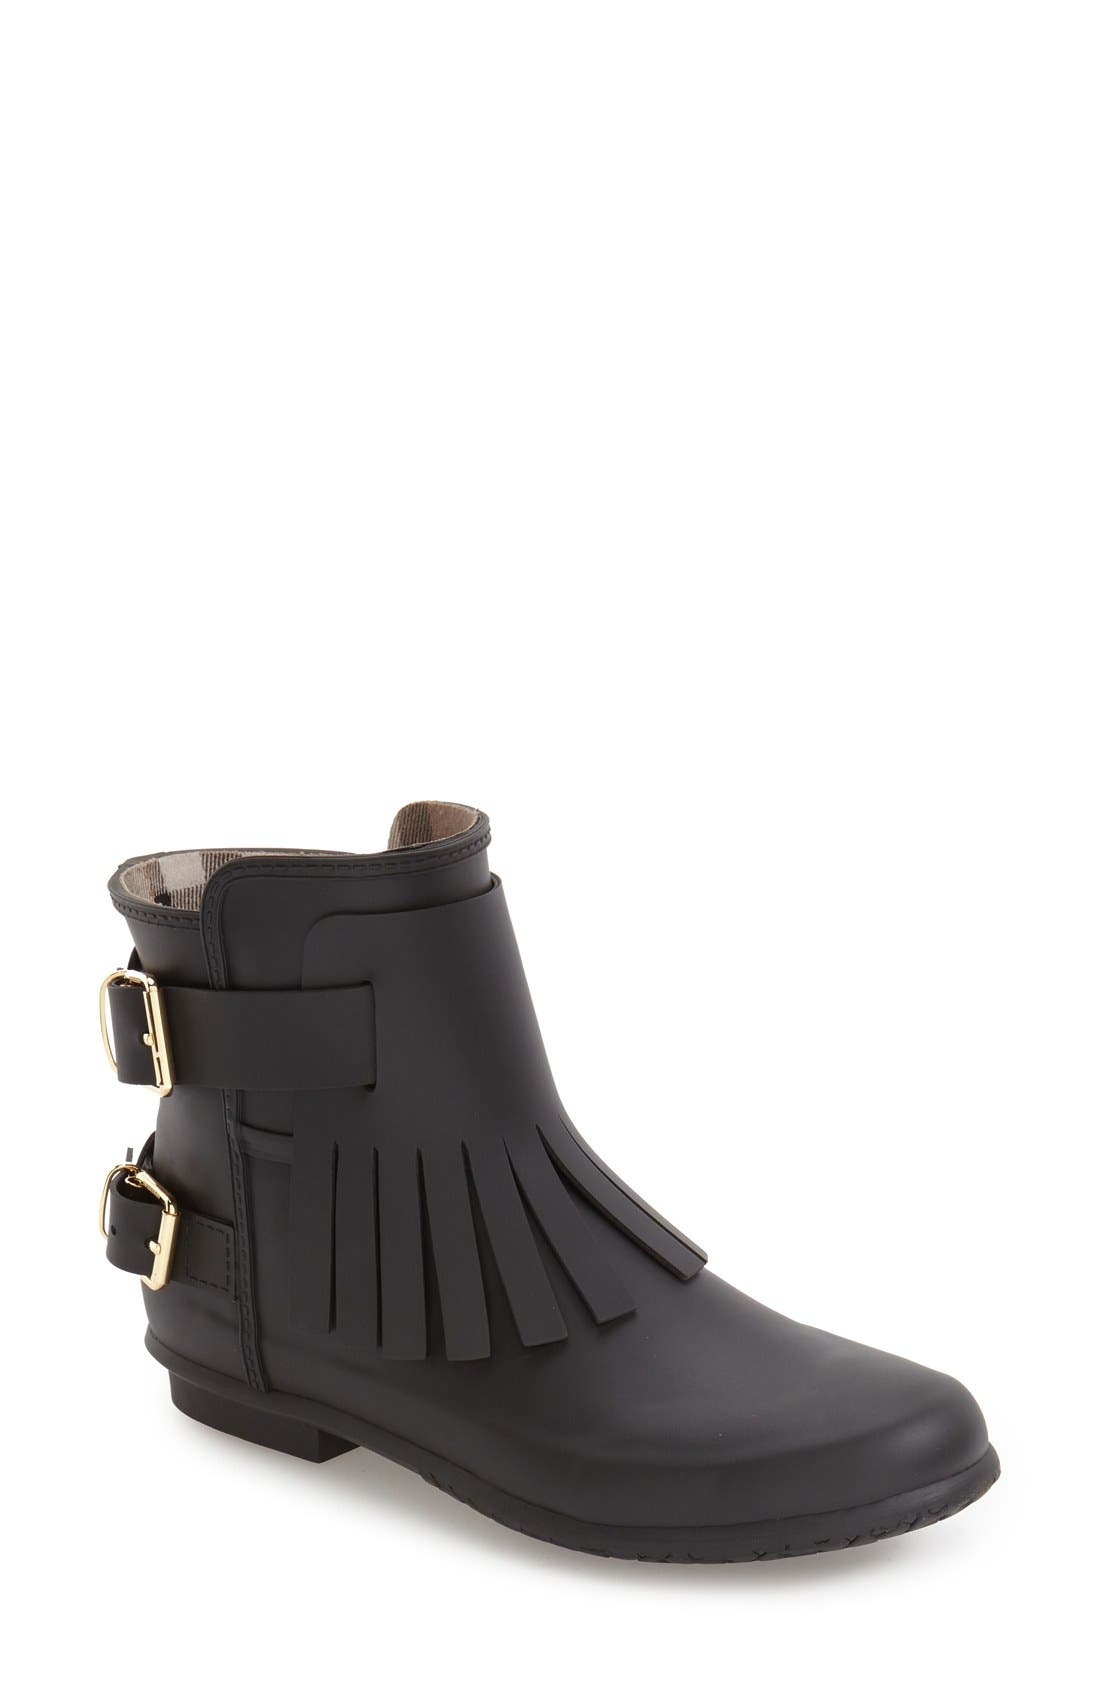 Alternate Image 1 Selected - Burberry 'Fritton' Kiltie Rain Boot (Women)